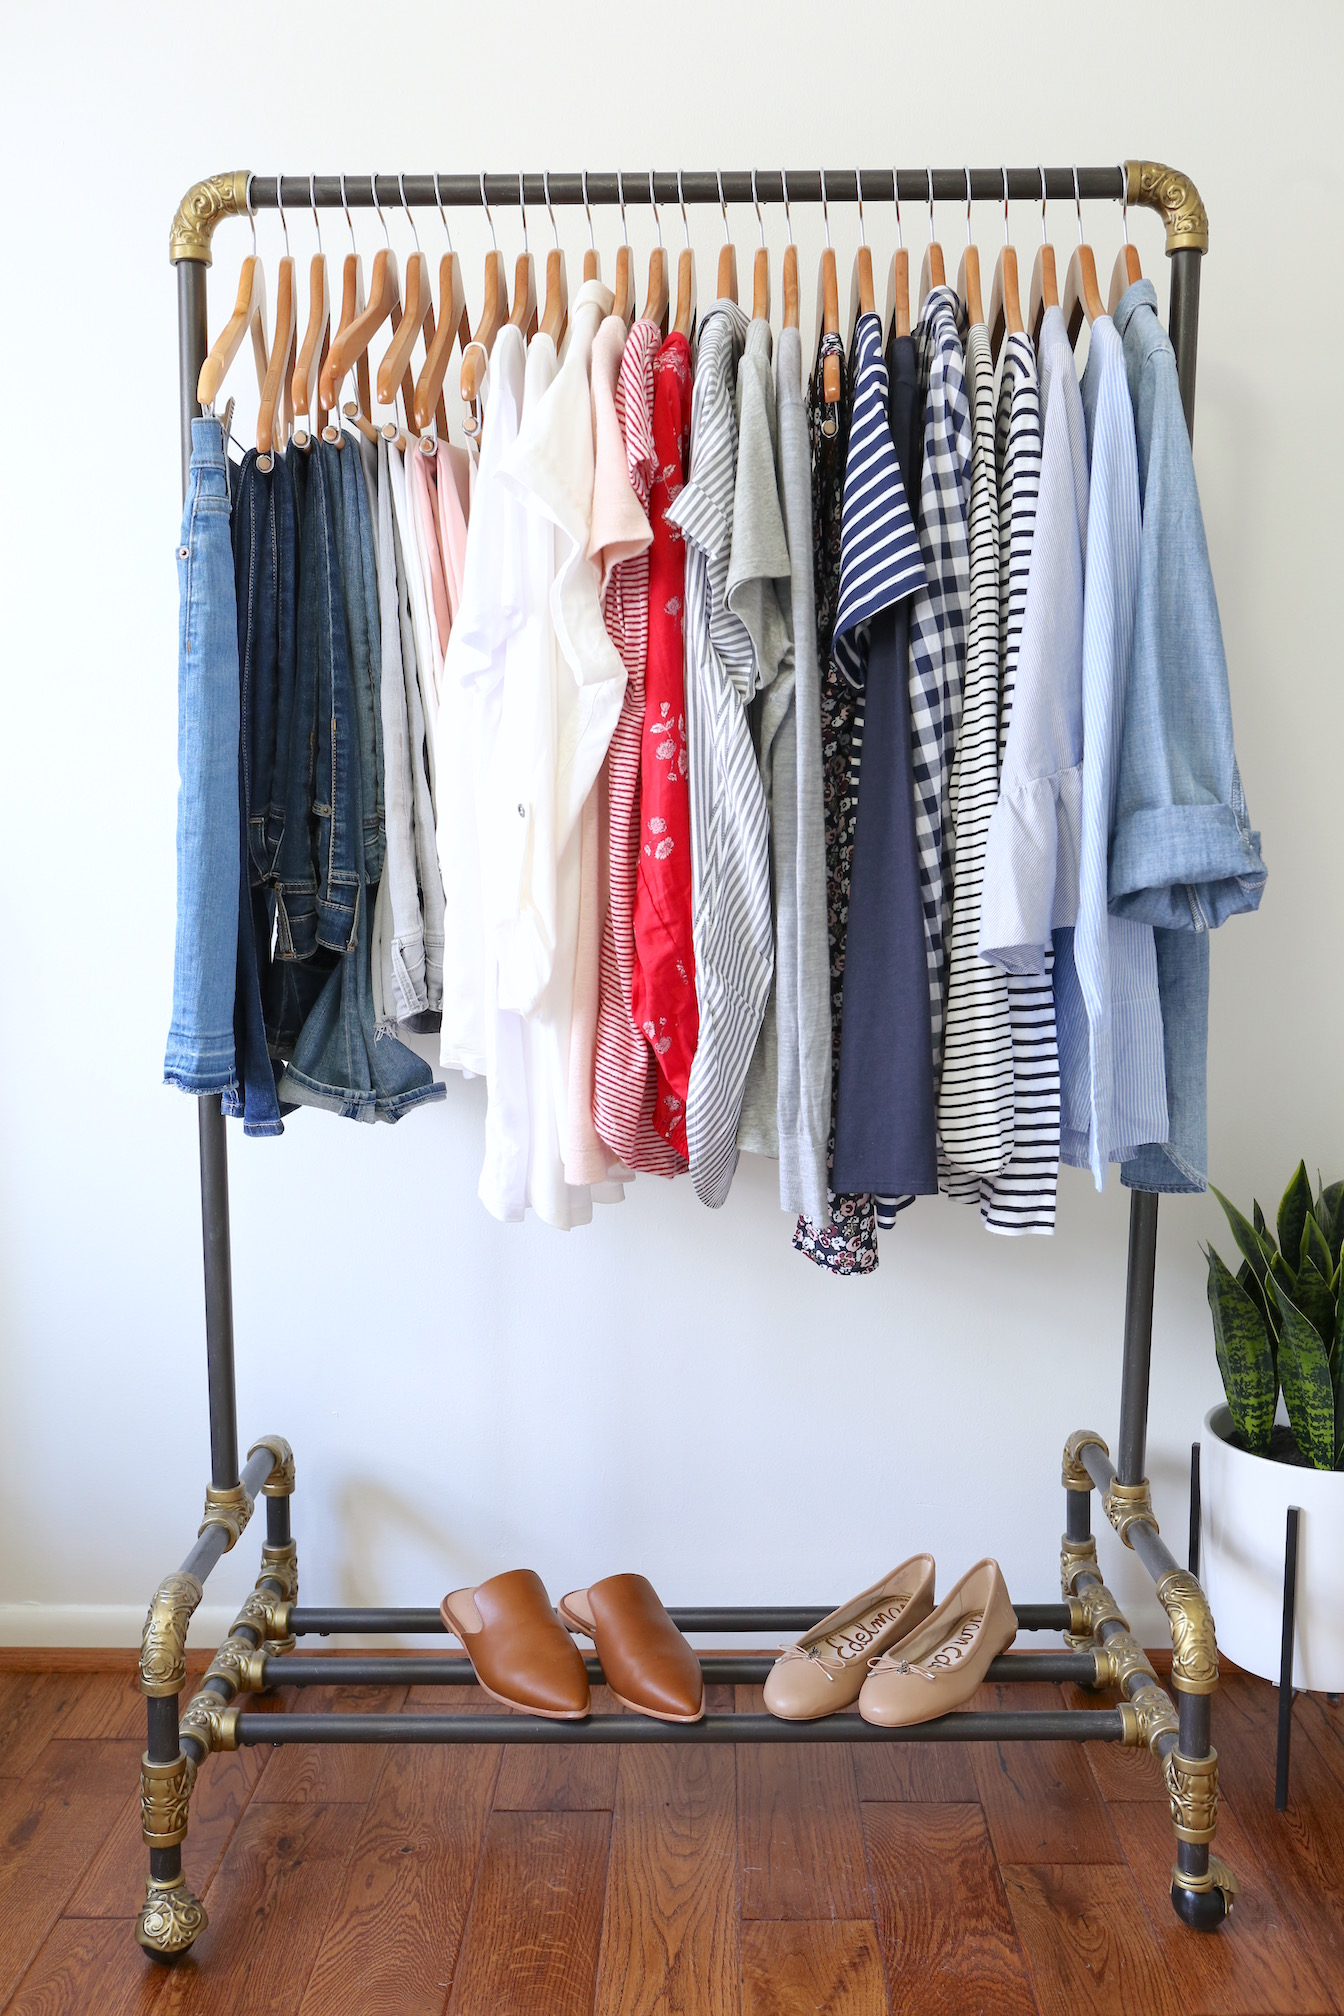 My Spring 2018 Capsule Wardrobe - clothes rack full